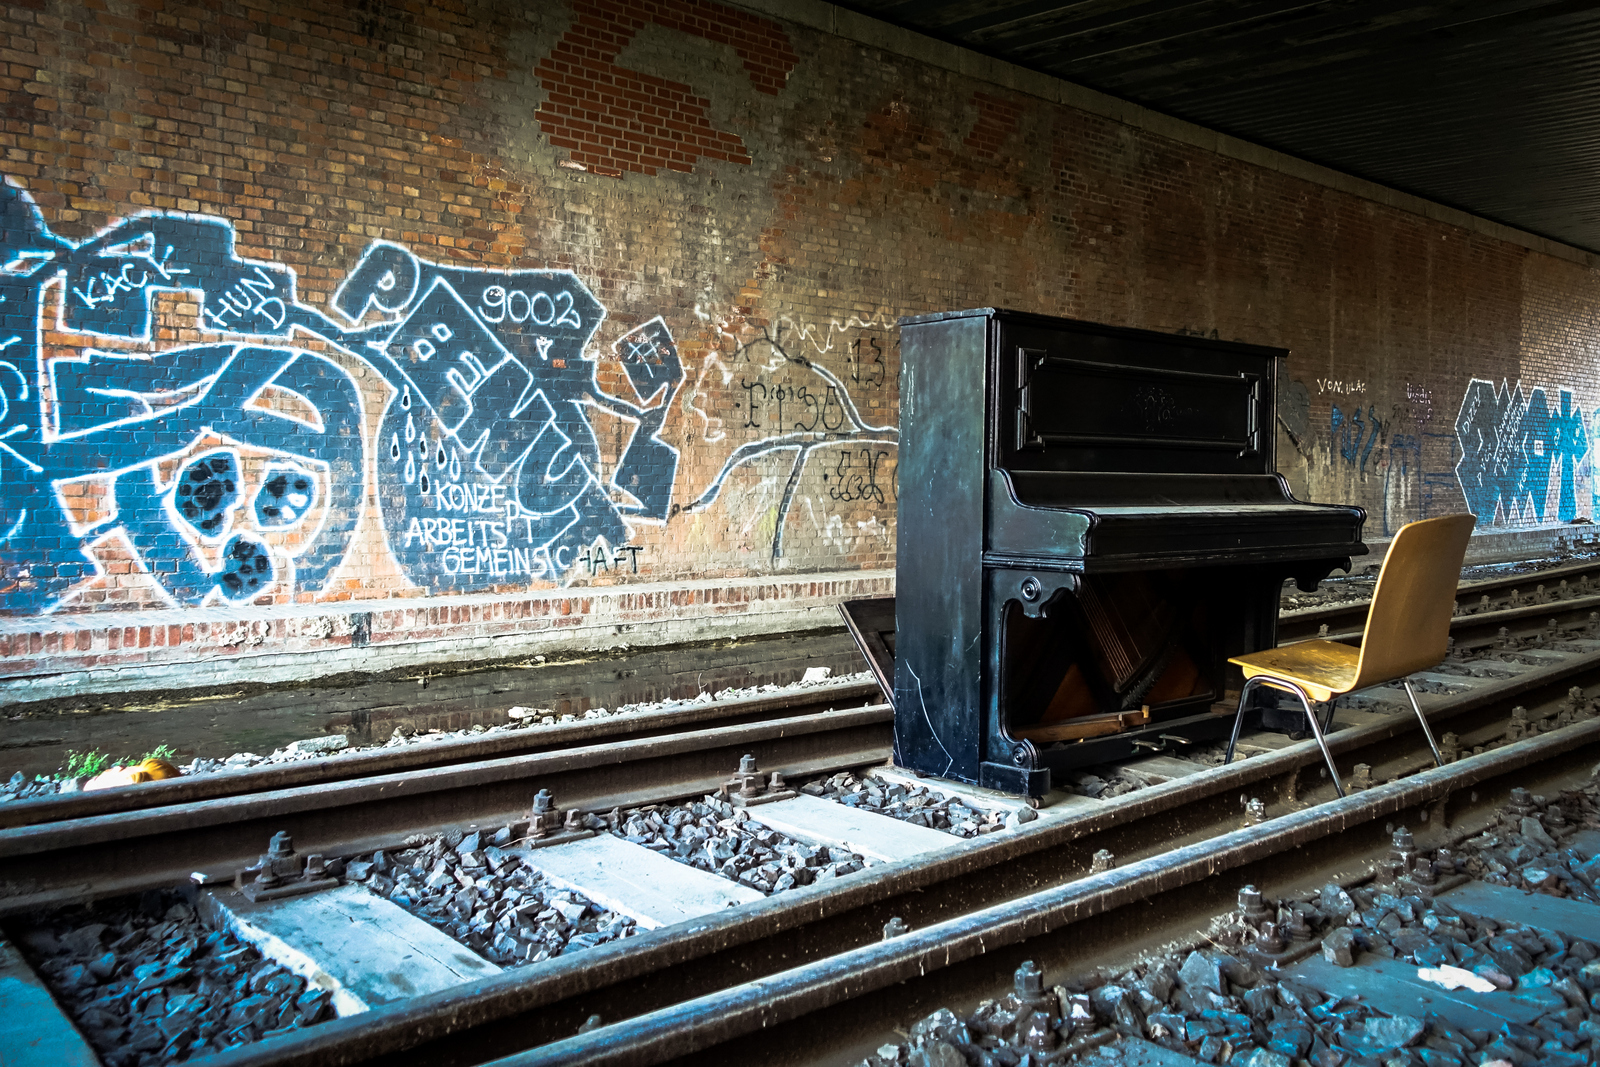 urbex & graffiti around s-bahnhof sonnenallee, berlin